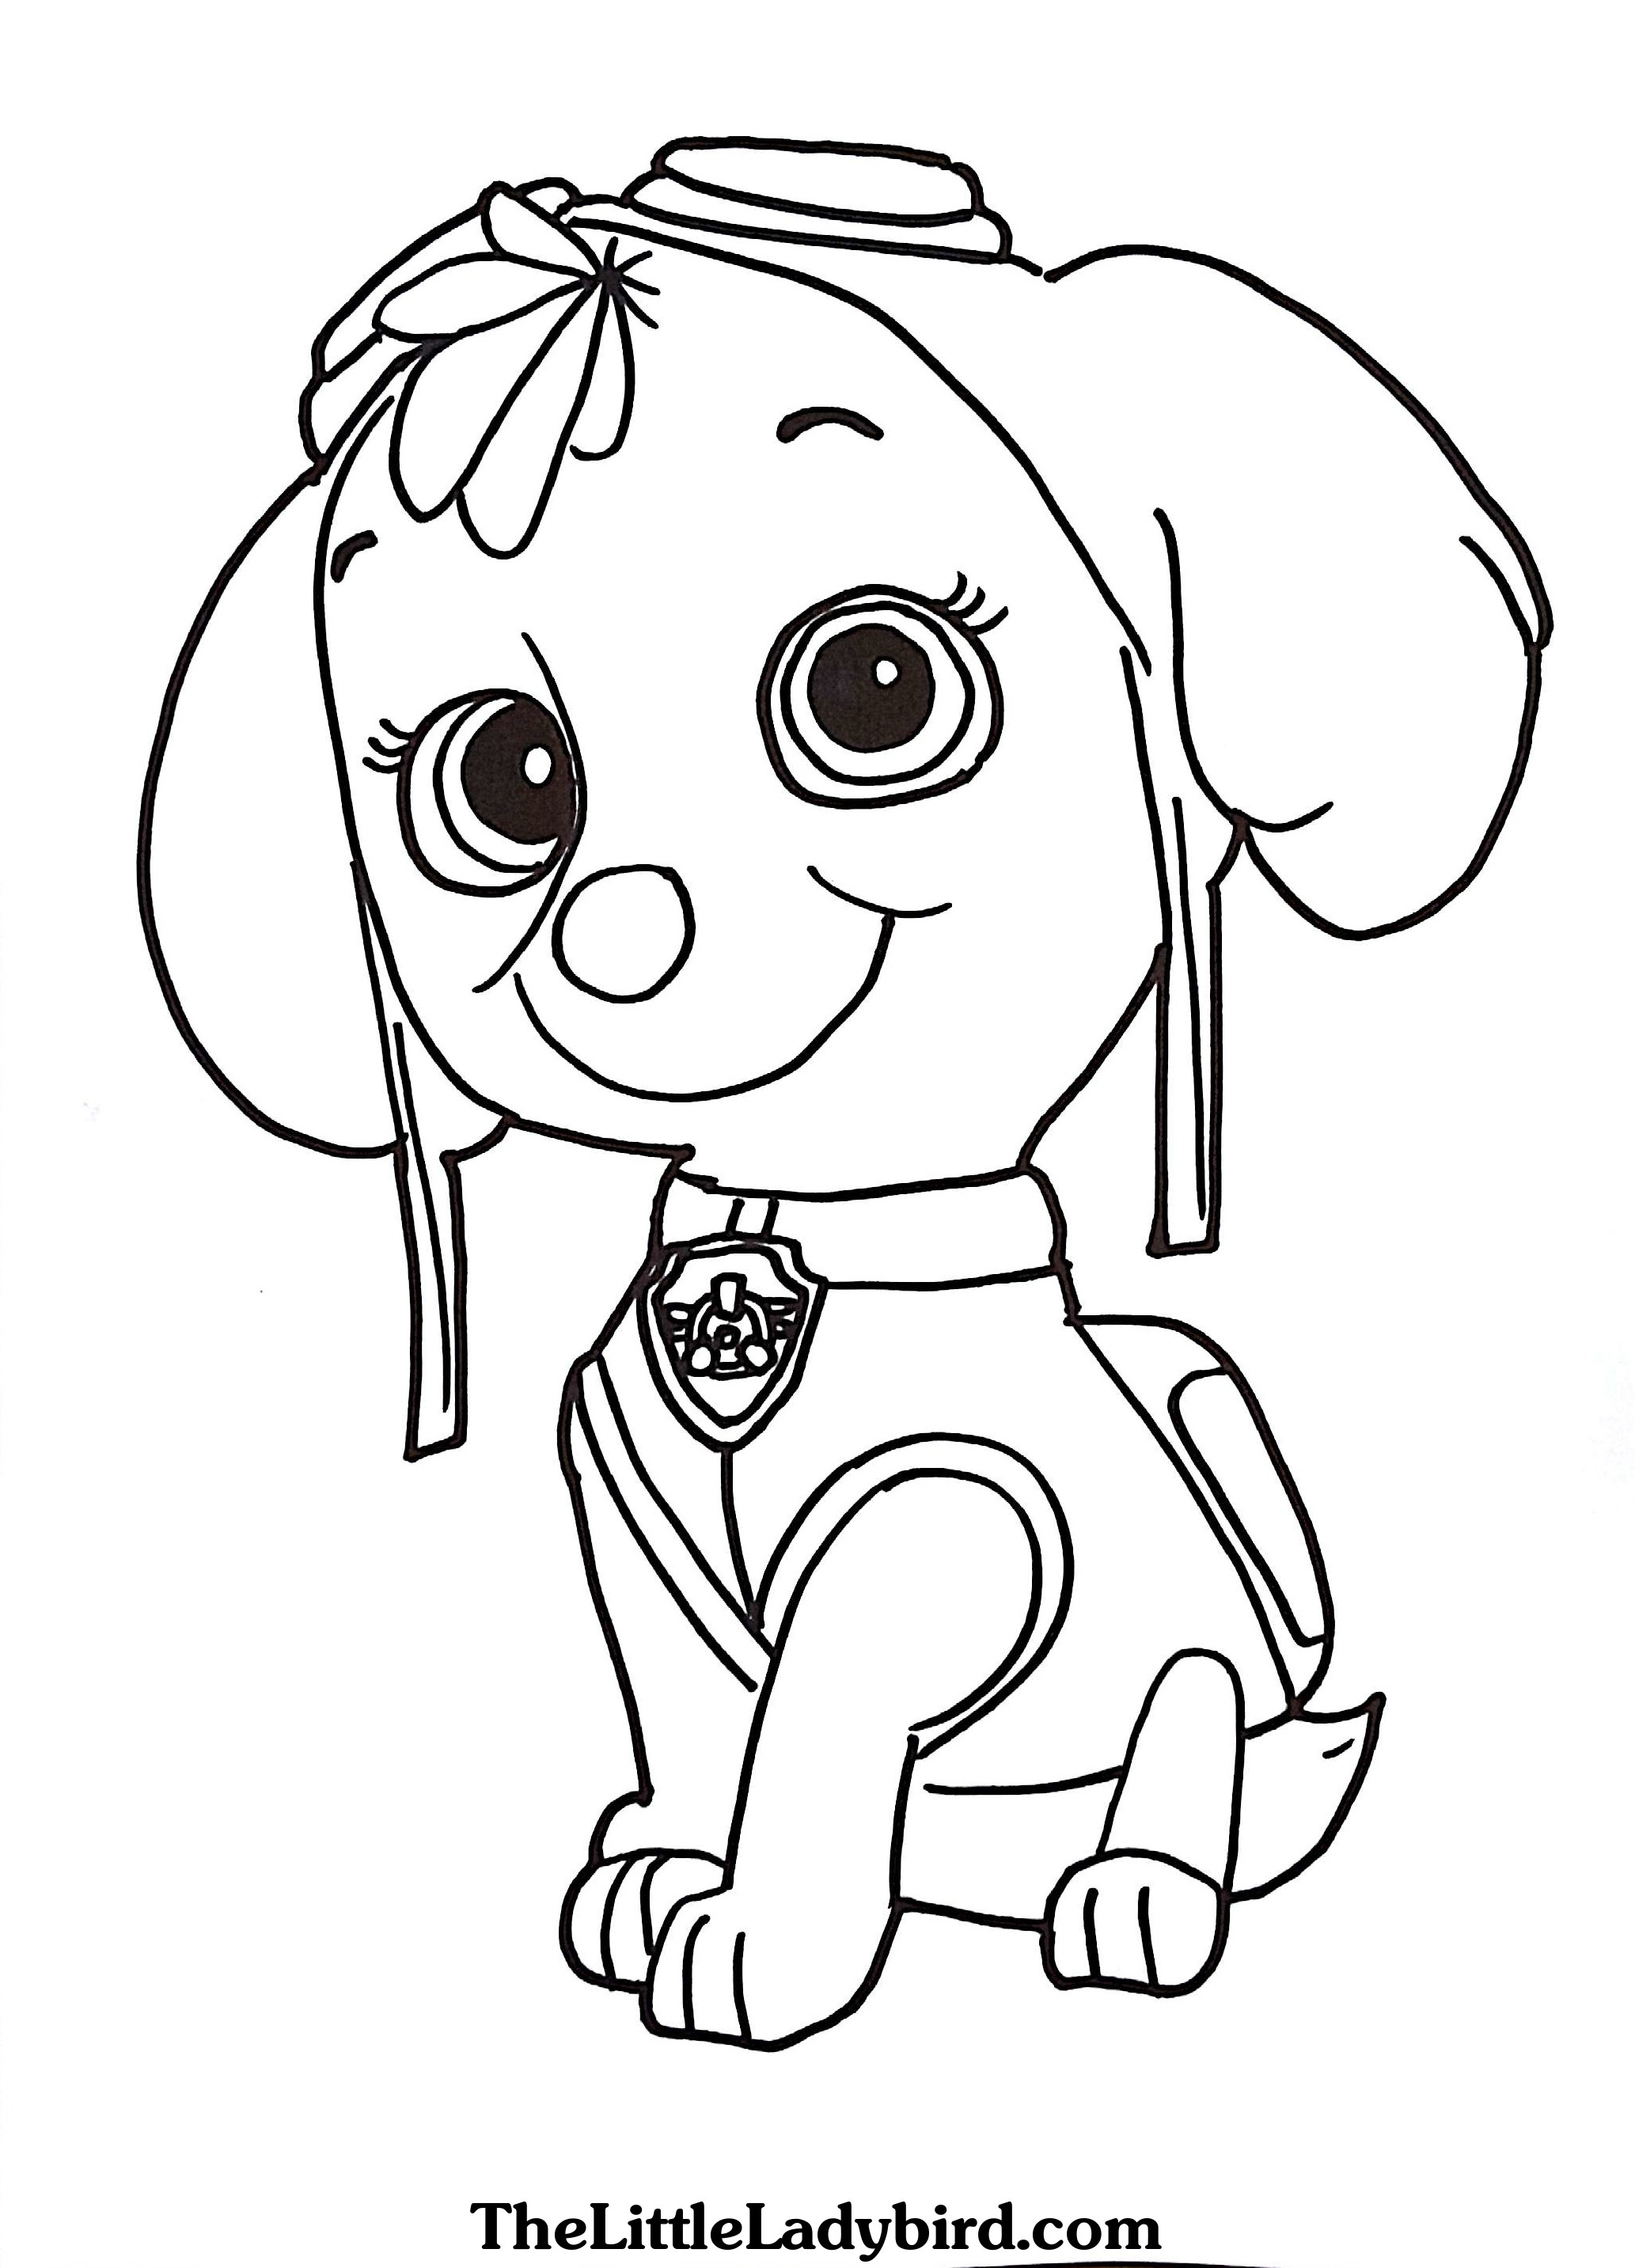 2066x2866 Paw Patrol Coloring Pages Sky To Print Coloring For Kids